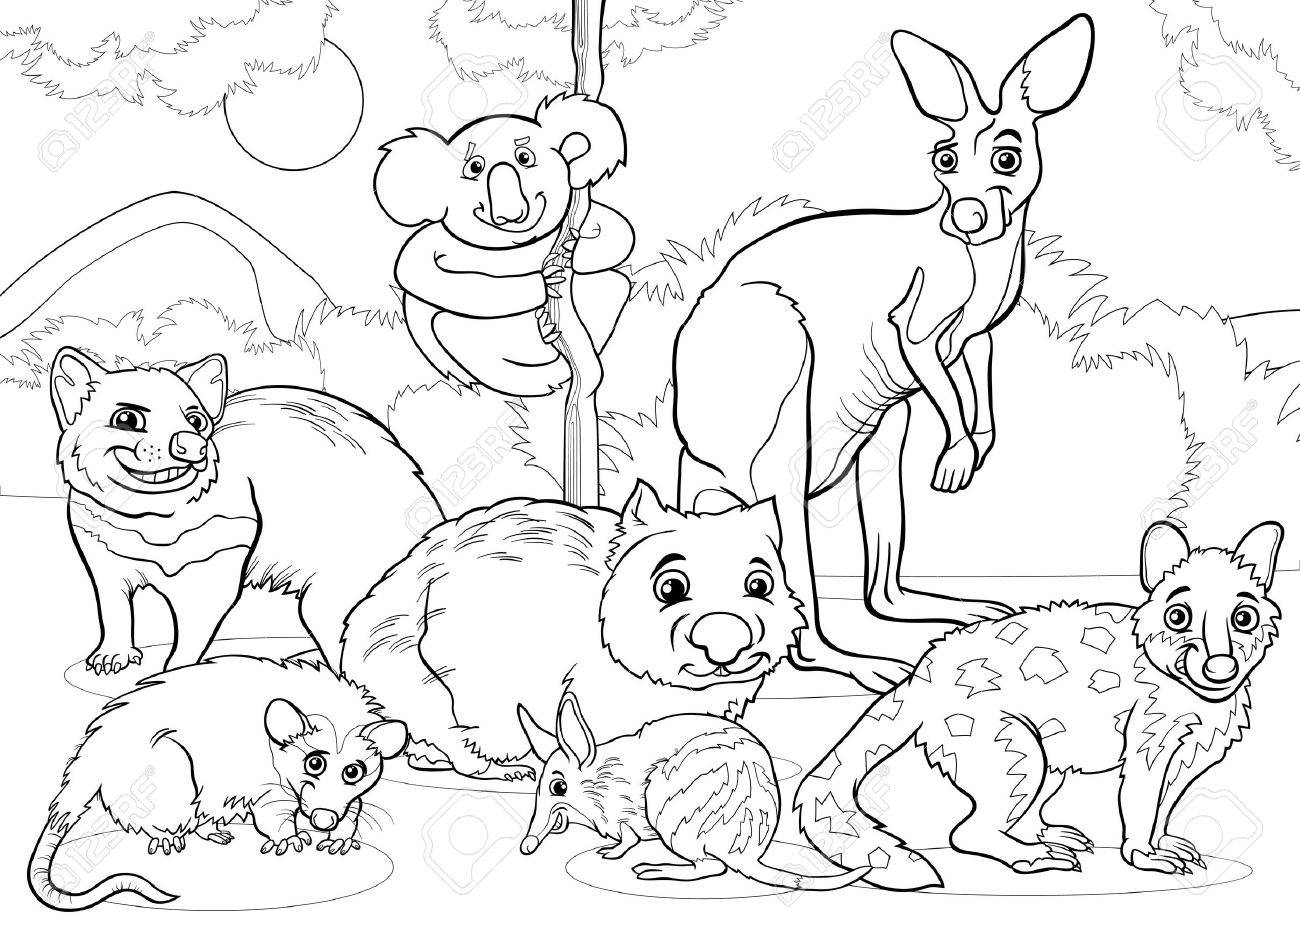 Realistic Wild Animal Coloring Pages - 2018 images & pictures ...